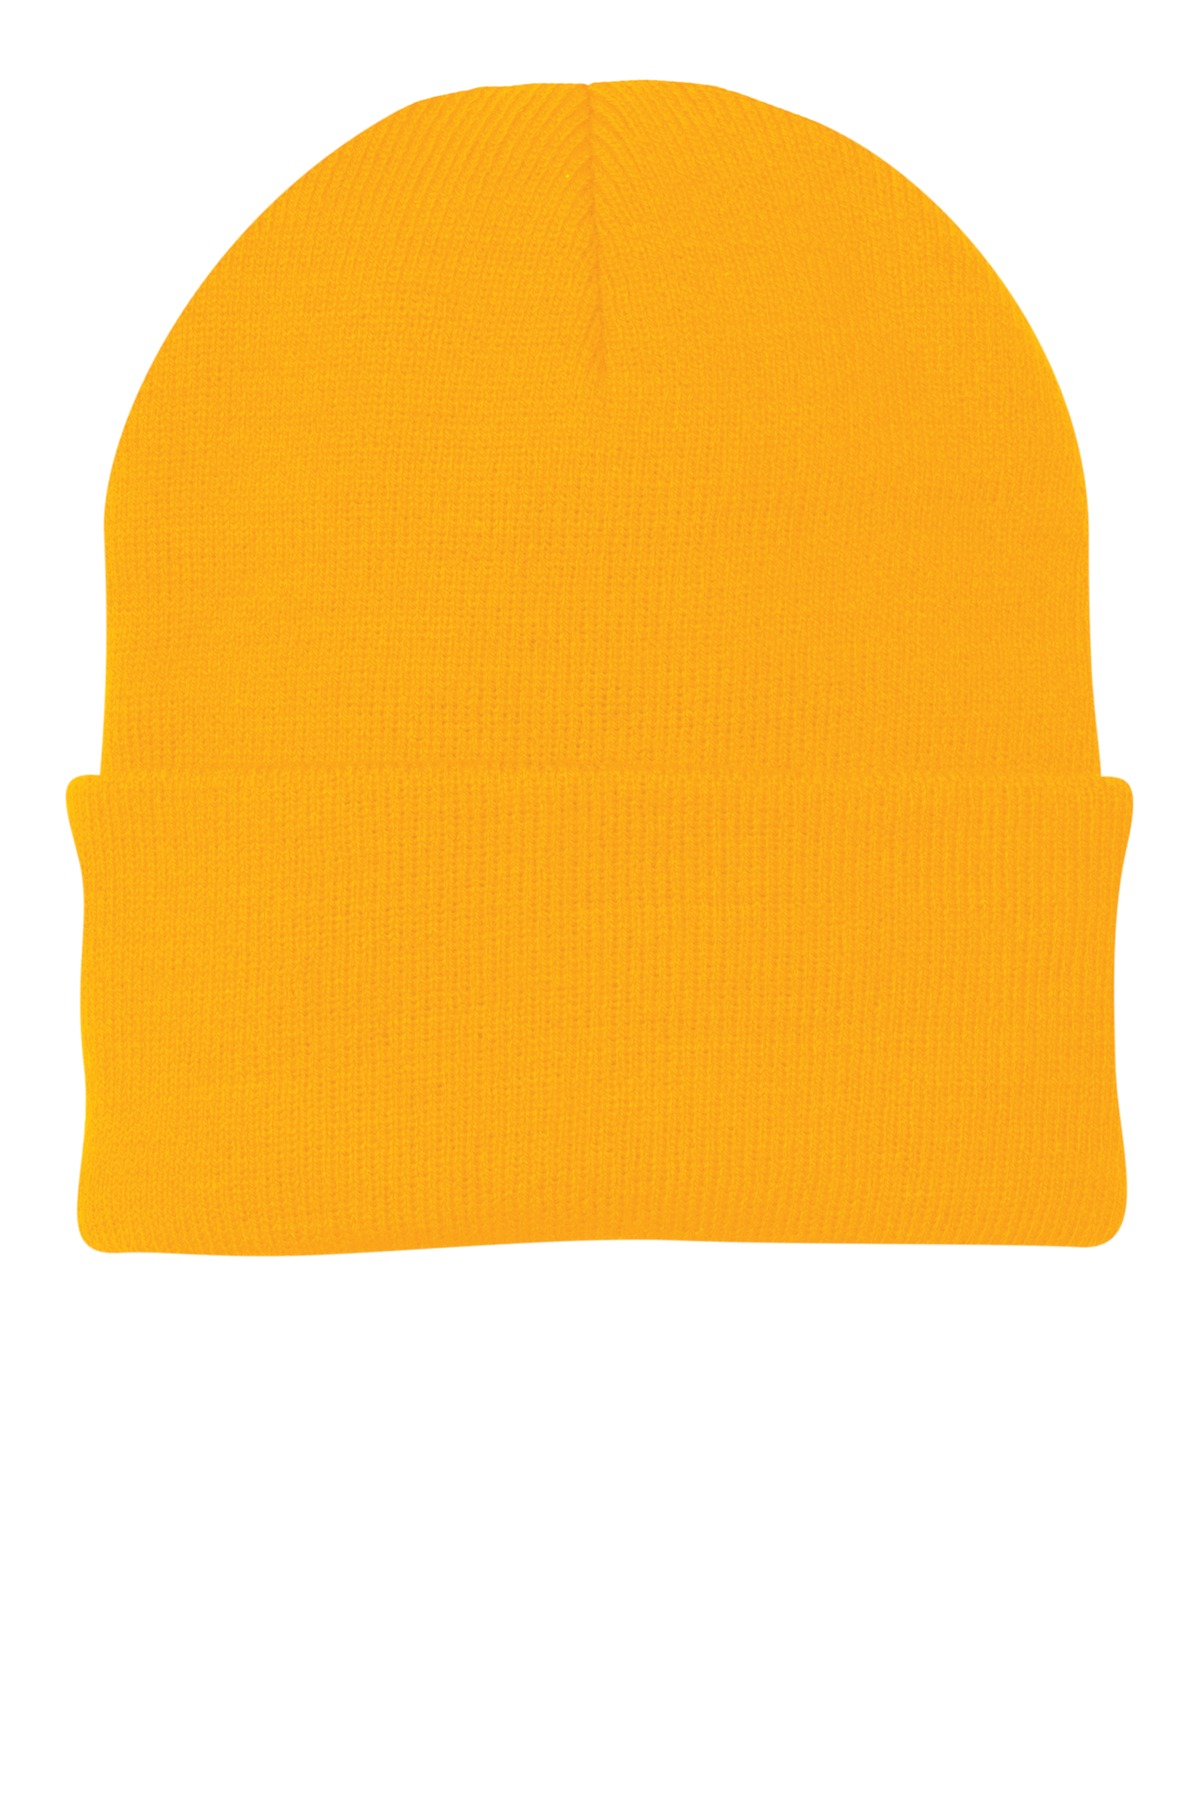 Port & Company ® Knit Cap.  CP90 - Athletic Gold